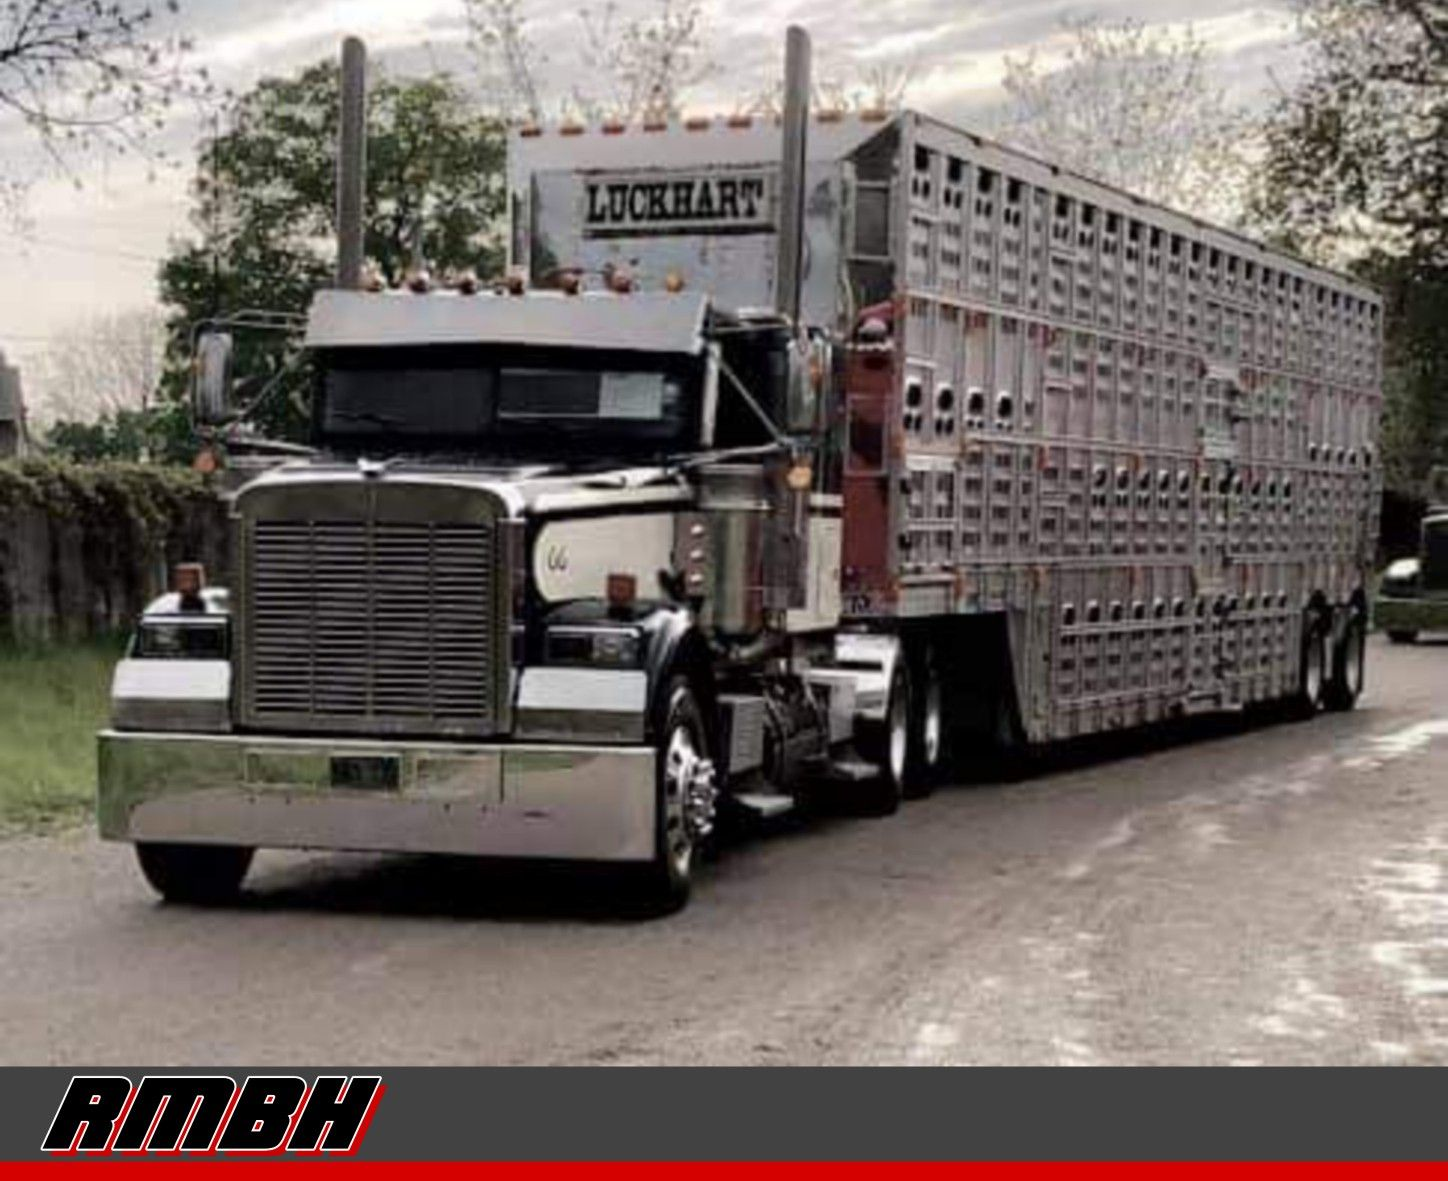 Pin by John C on Working Semi trucks (with trailers